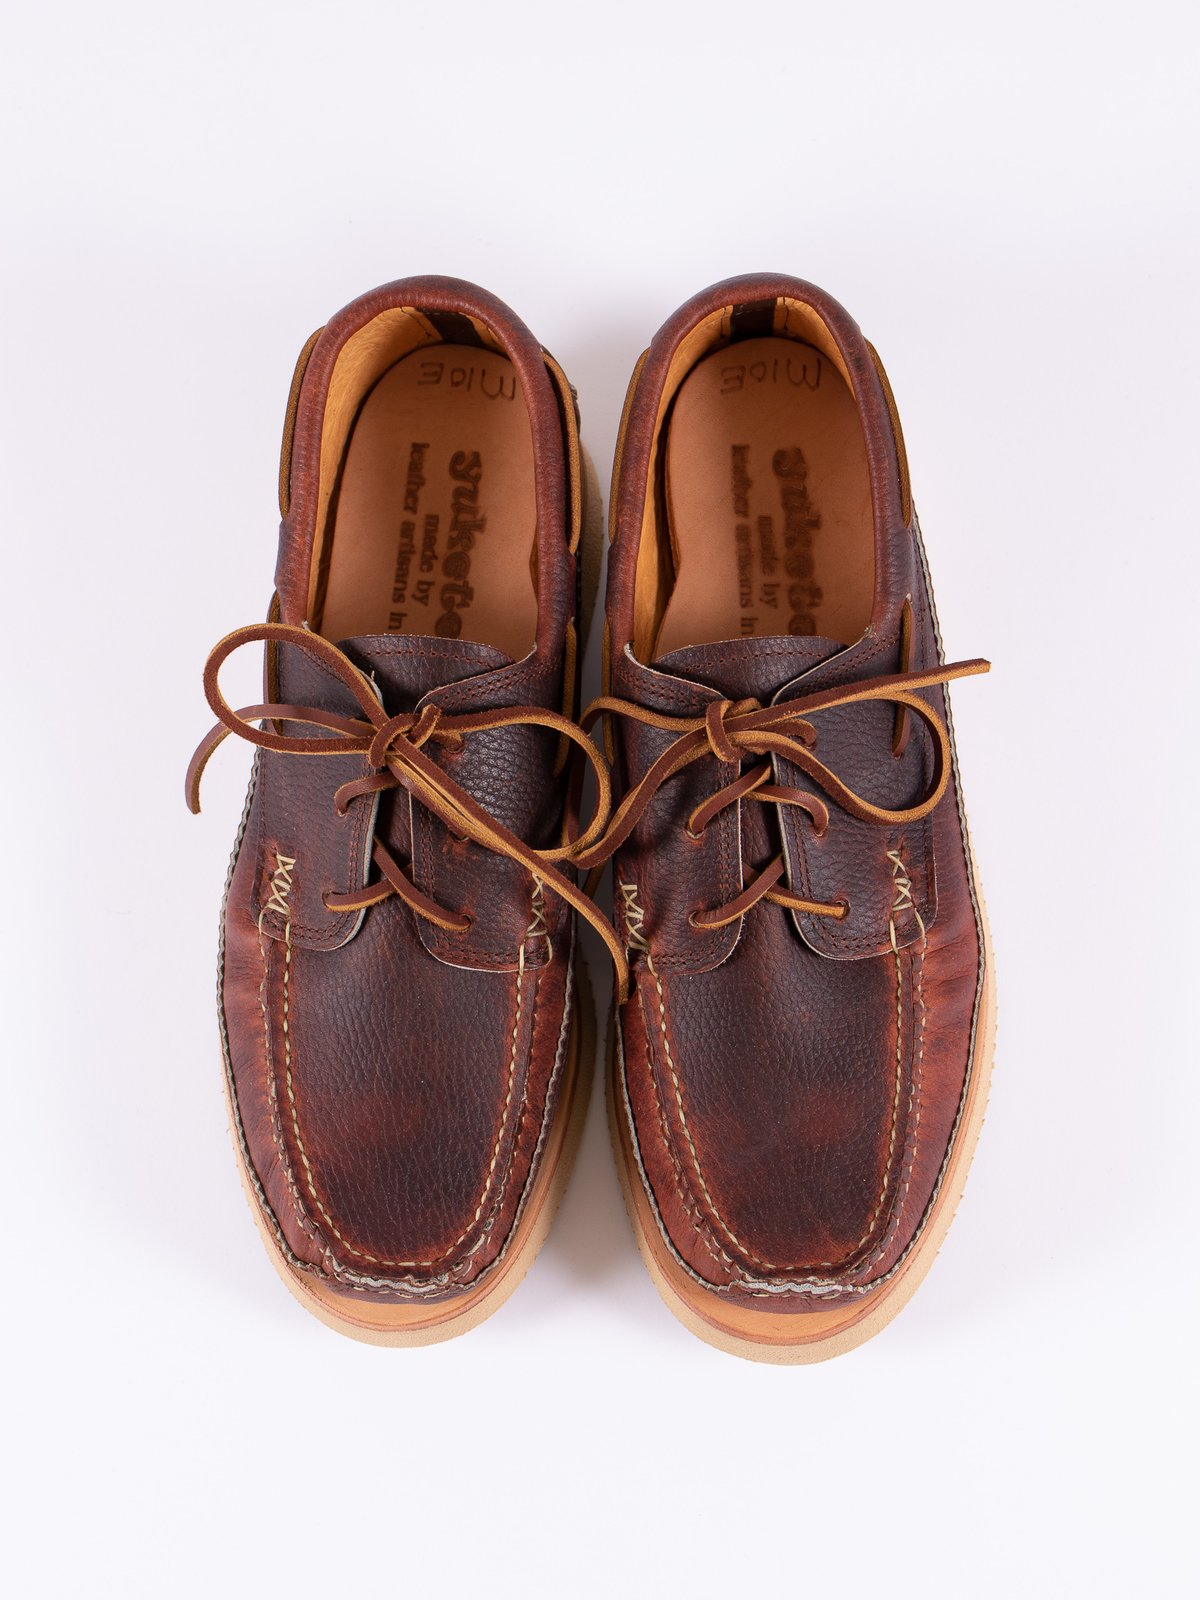 Chromepak Brown Boat Shoe Exclusive - Image 6